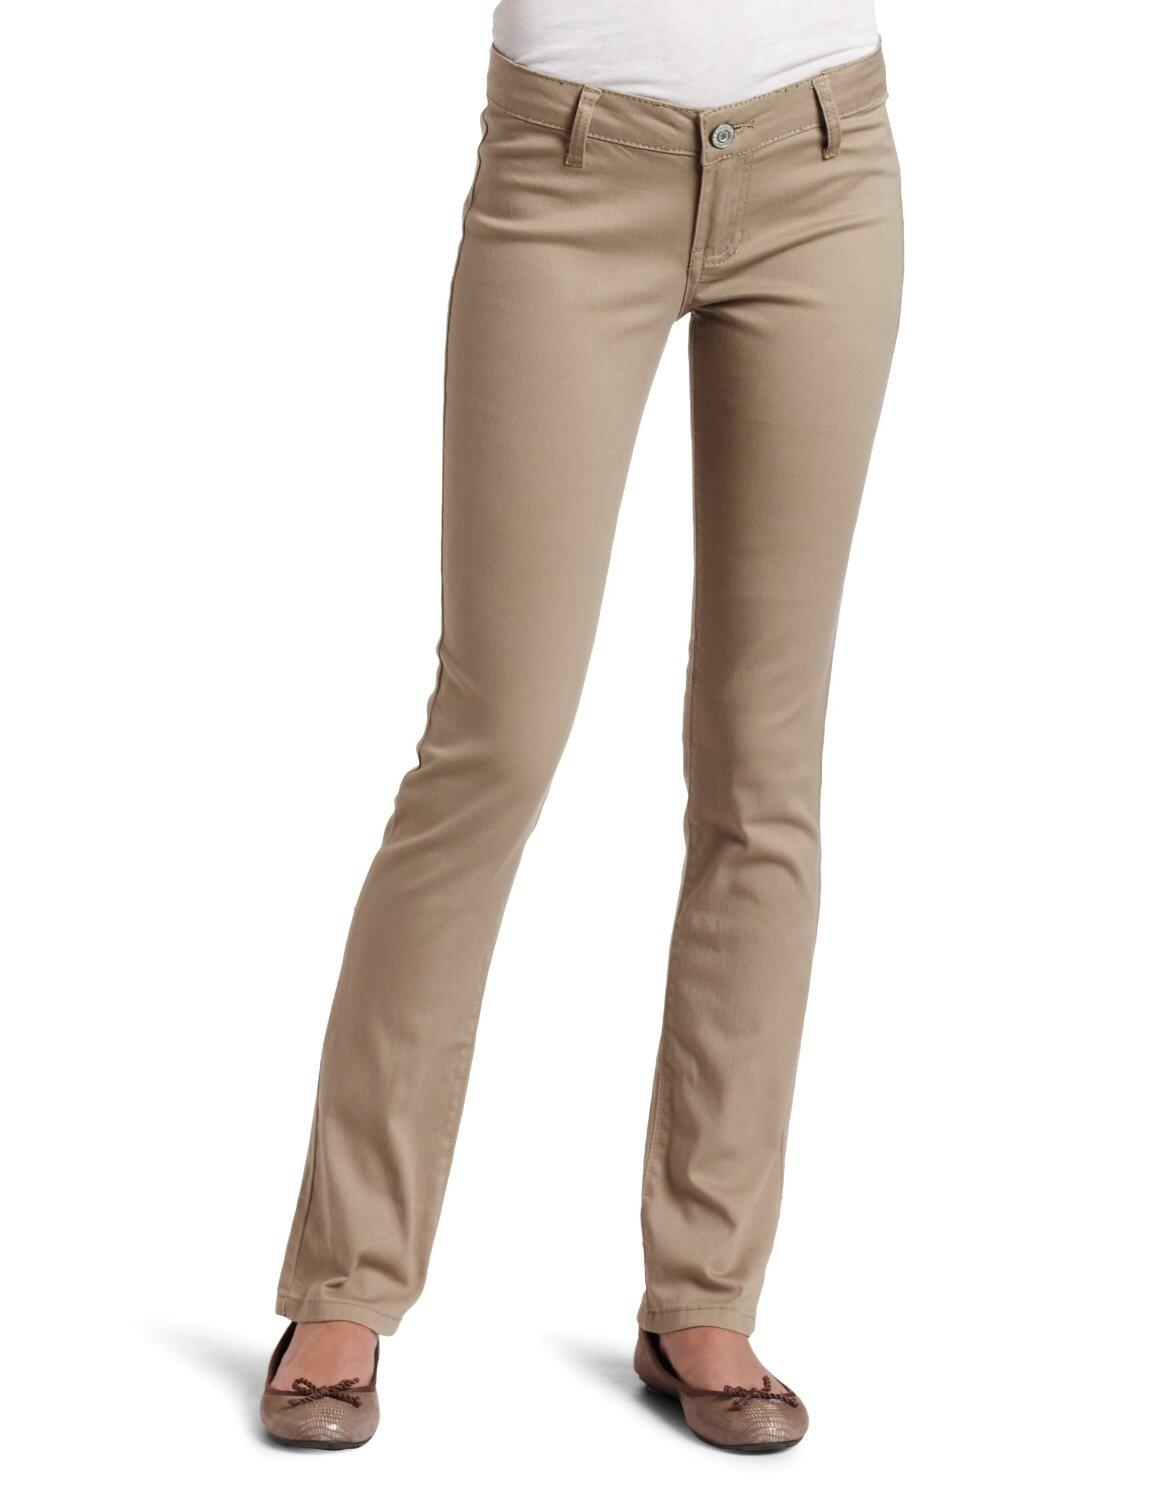 Girls tan pants